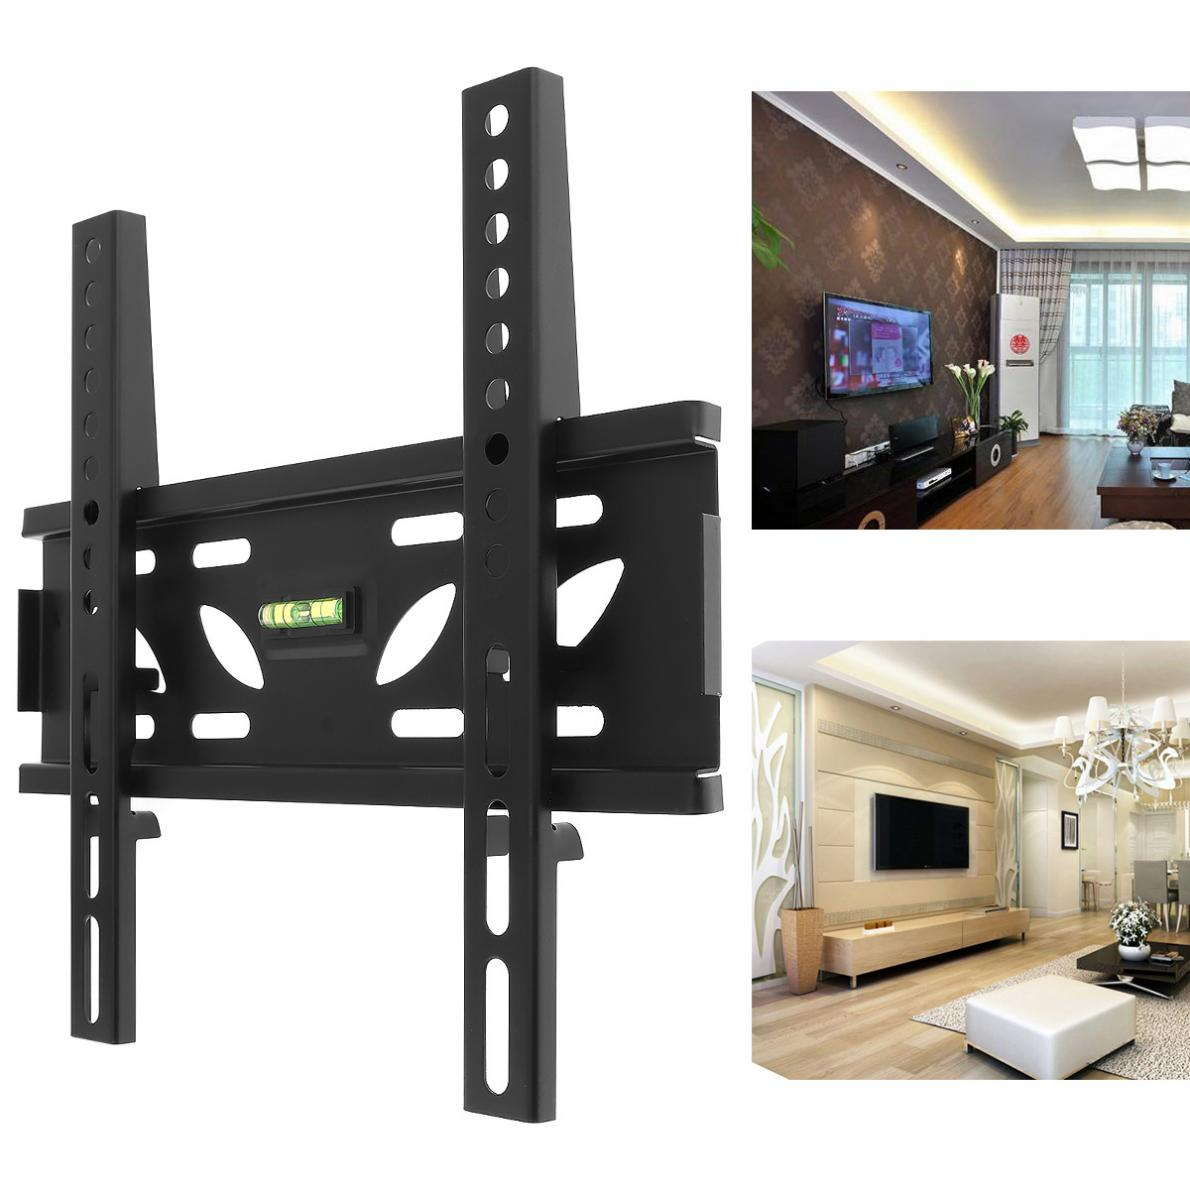 Wall Mounted Tv Frame Popular Lcd Tv Frames Buy Cheap Lcd Tv Frames Lots From China Lcd